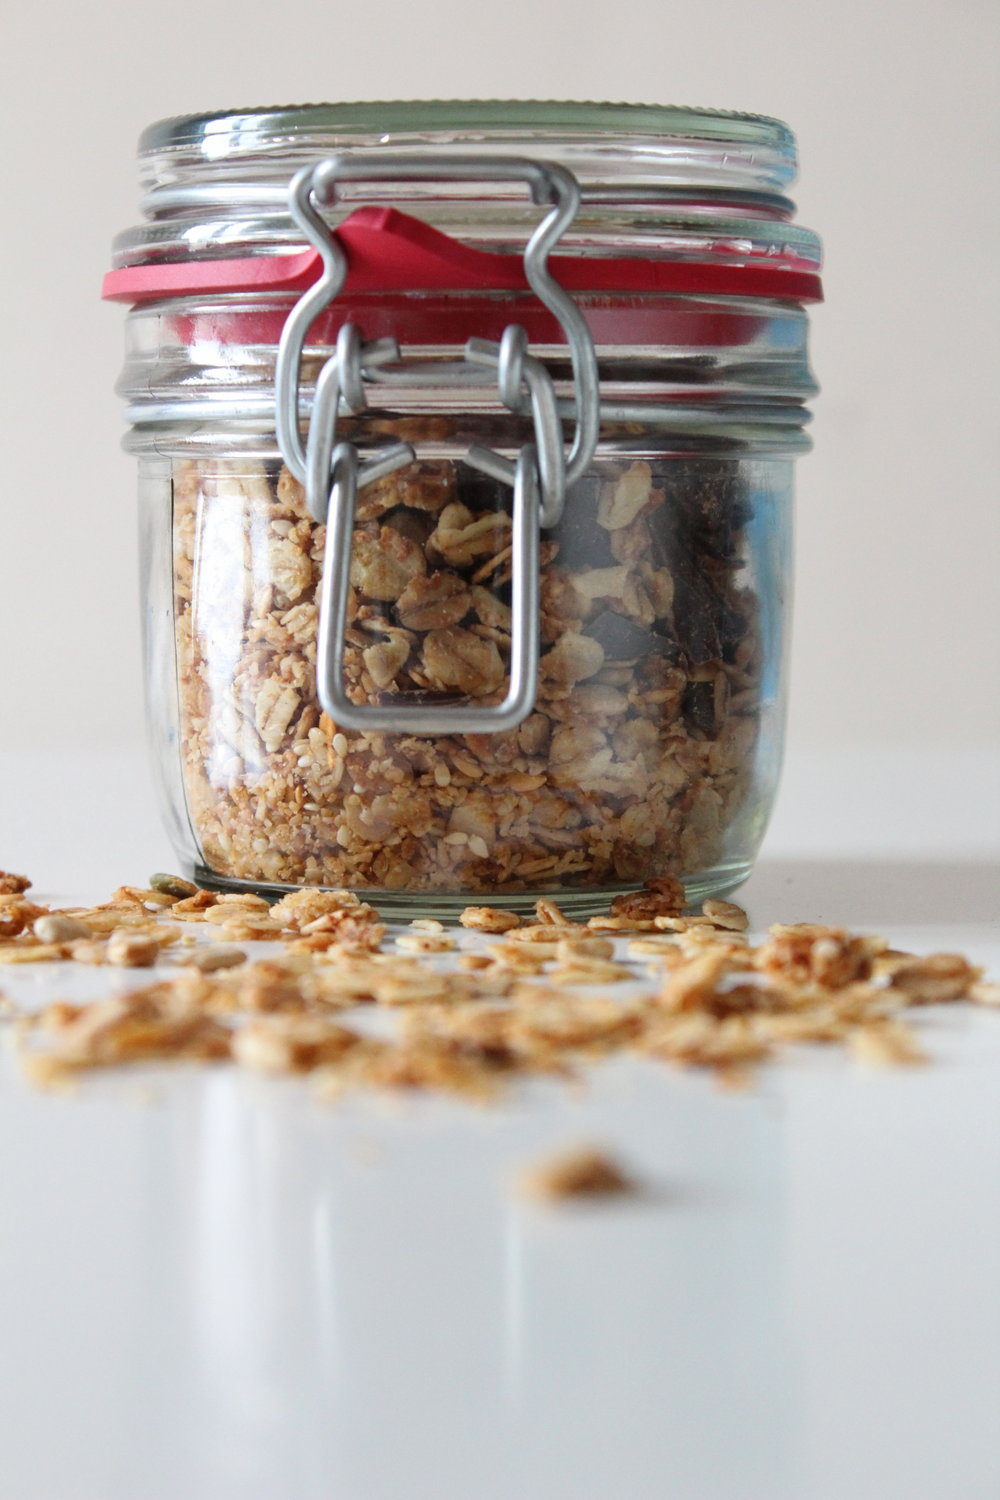 Granola-in-jar.JPG